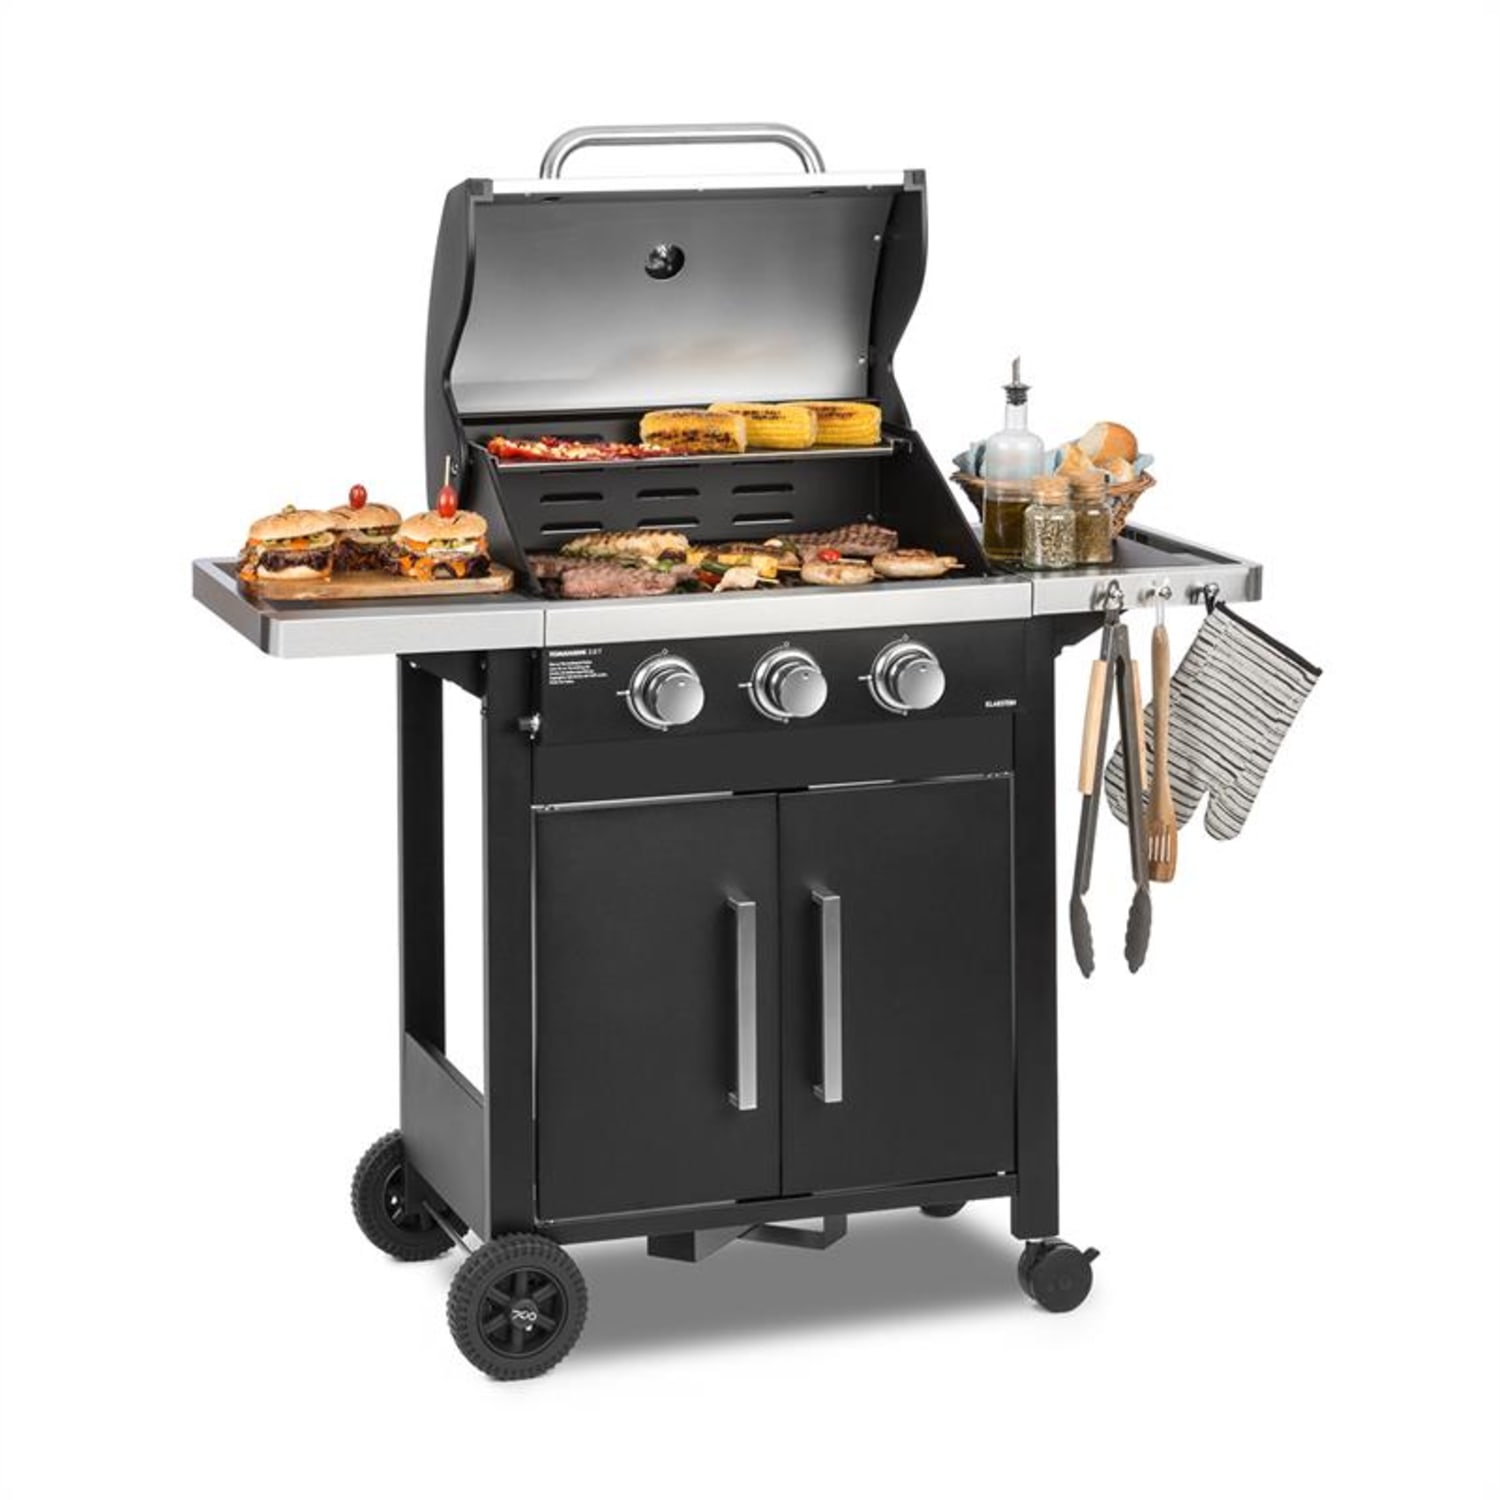 Tomahawk 3.0 T Gas Grill 3 x 3.2 kW Burner 53x39cm Grill Stainless Steel